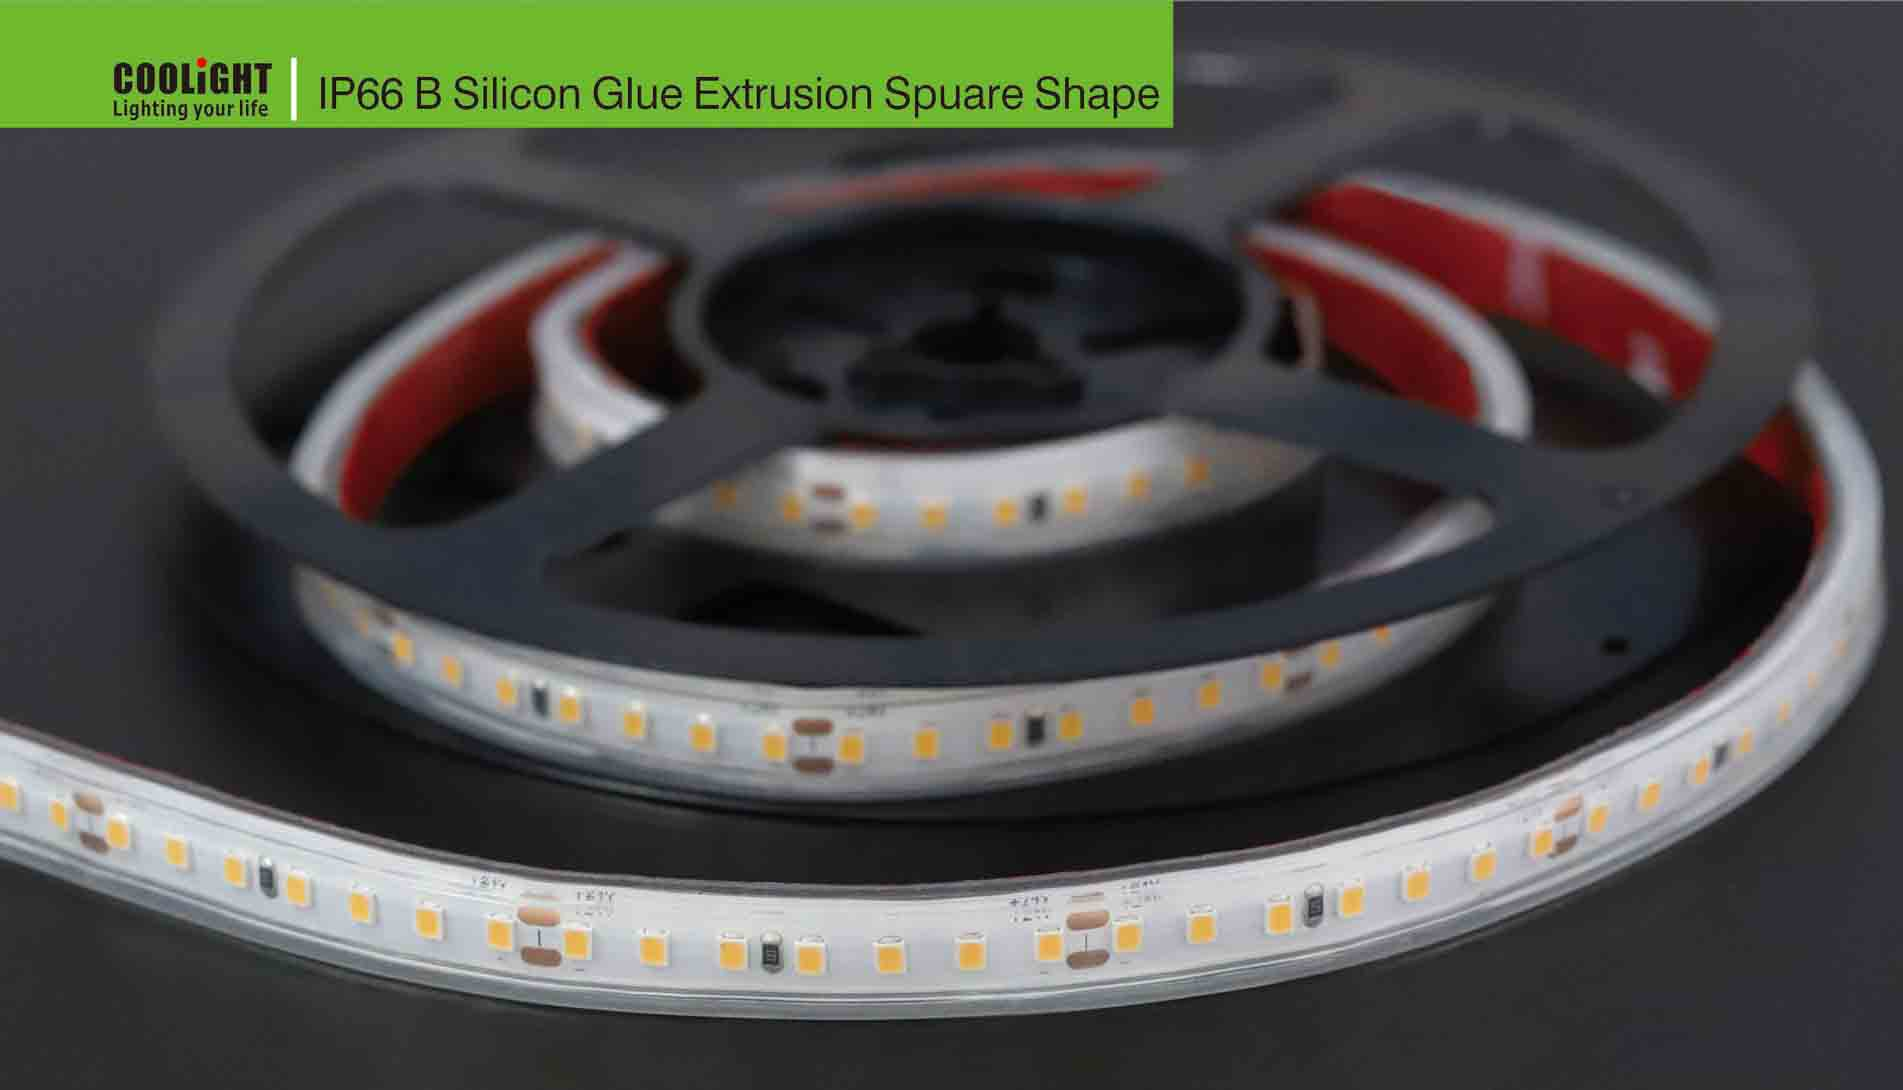 ip66 b silicon glue extrusion square shape